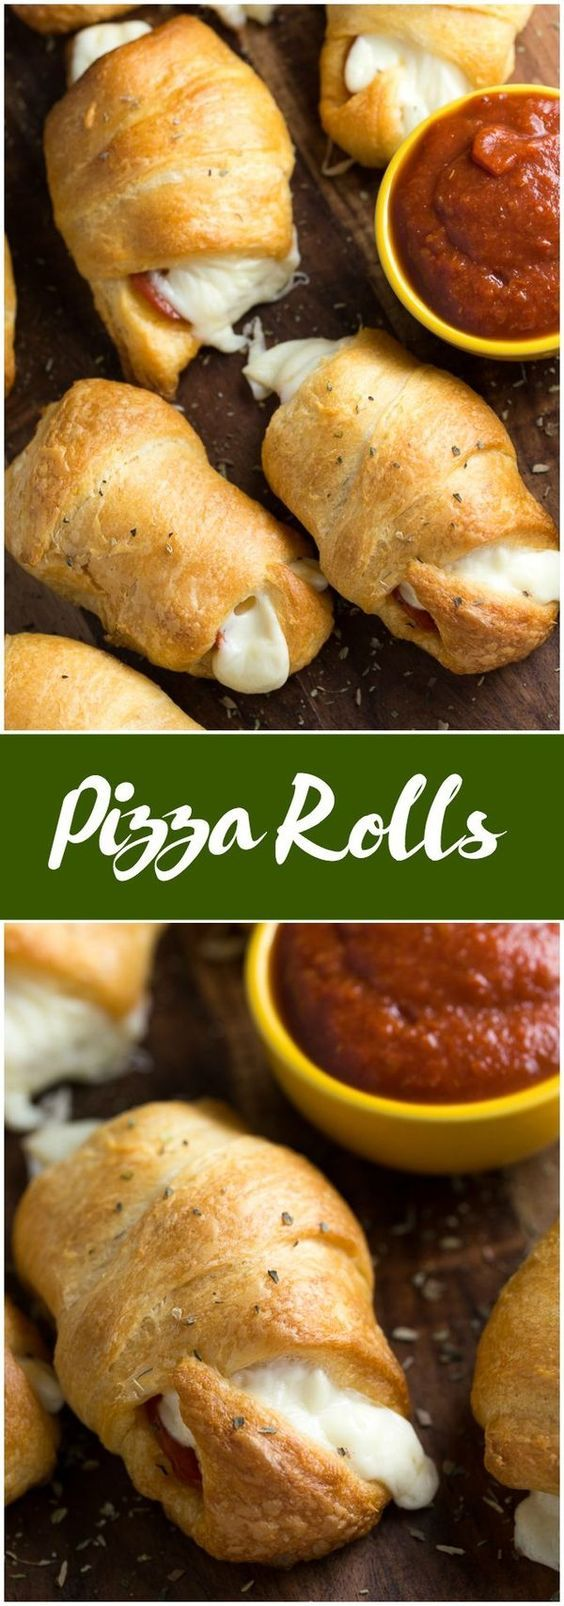 Quick and easy snack for family fun night? These are just what you need! Sponsored by HORMEL® Pepperoni #PEPItUp #ad